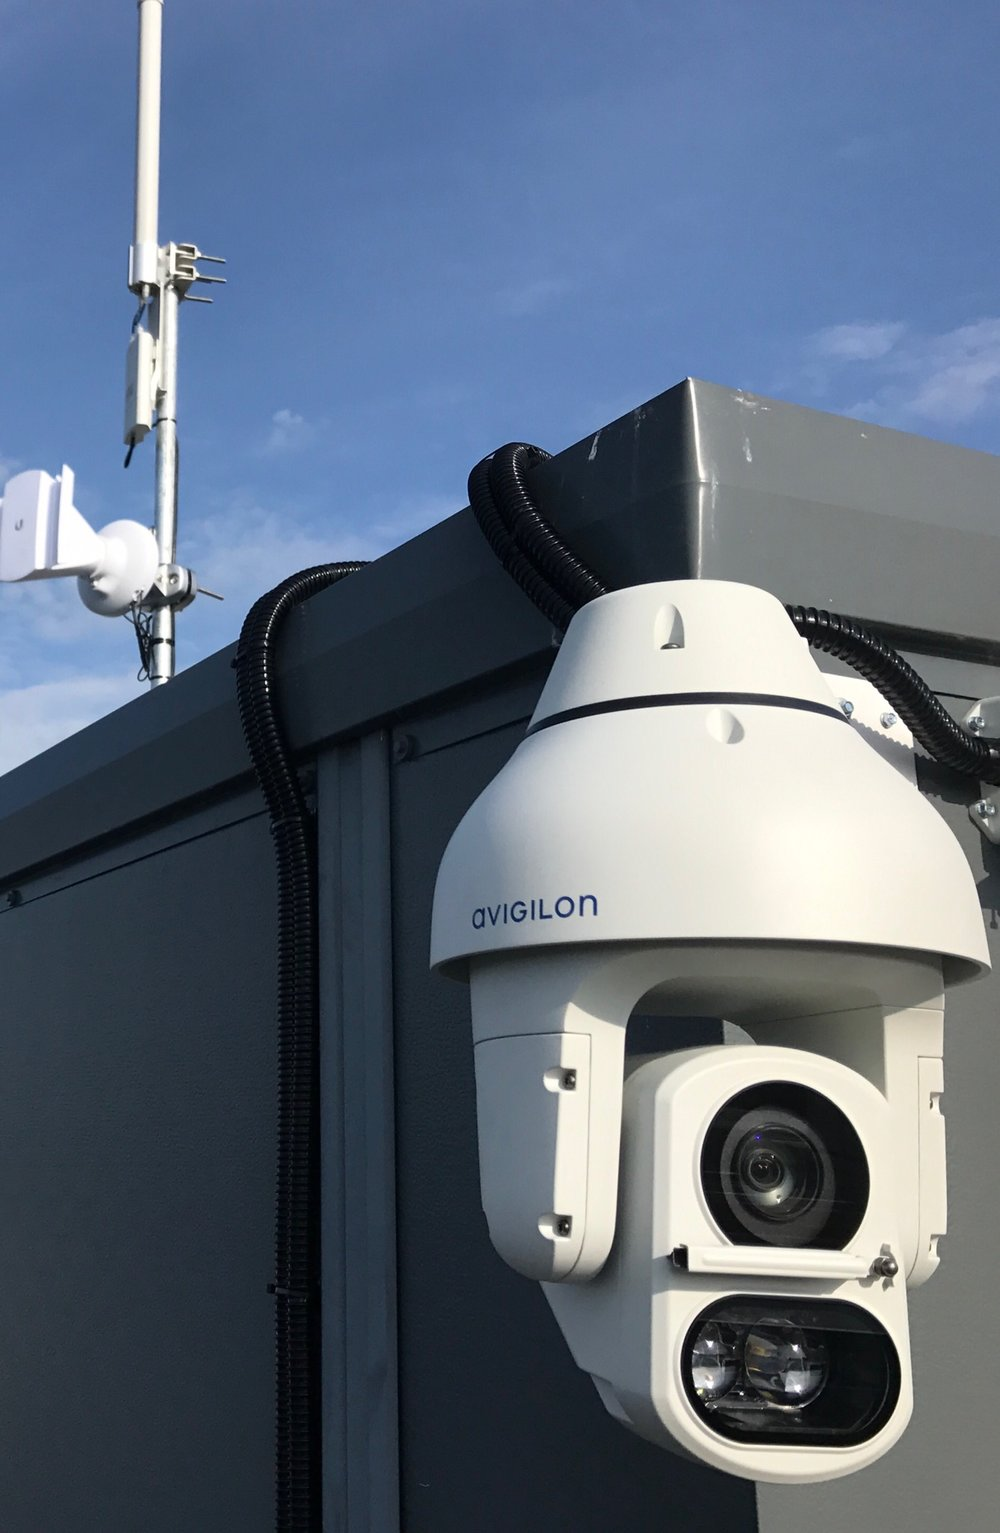 Avigilon H4 PTZ with analytics from Usee.ie